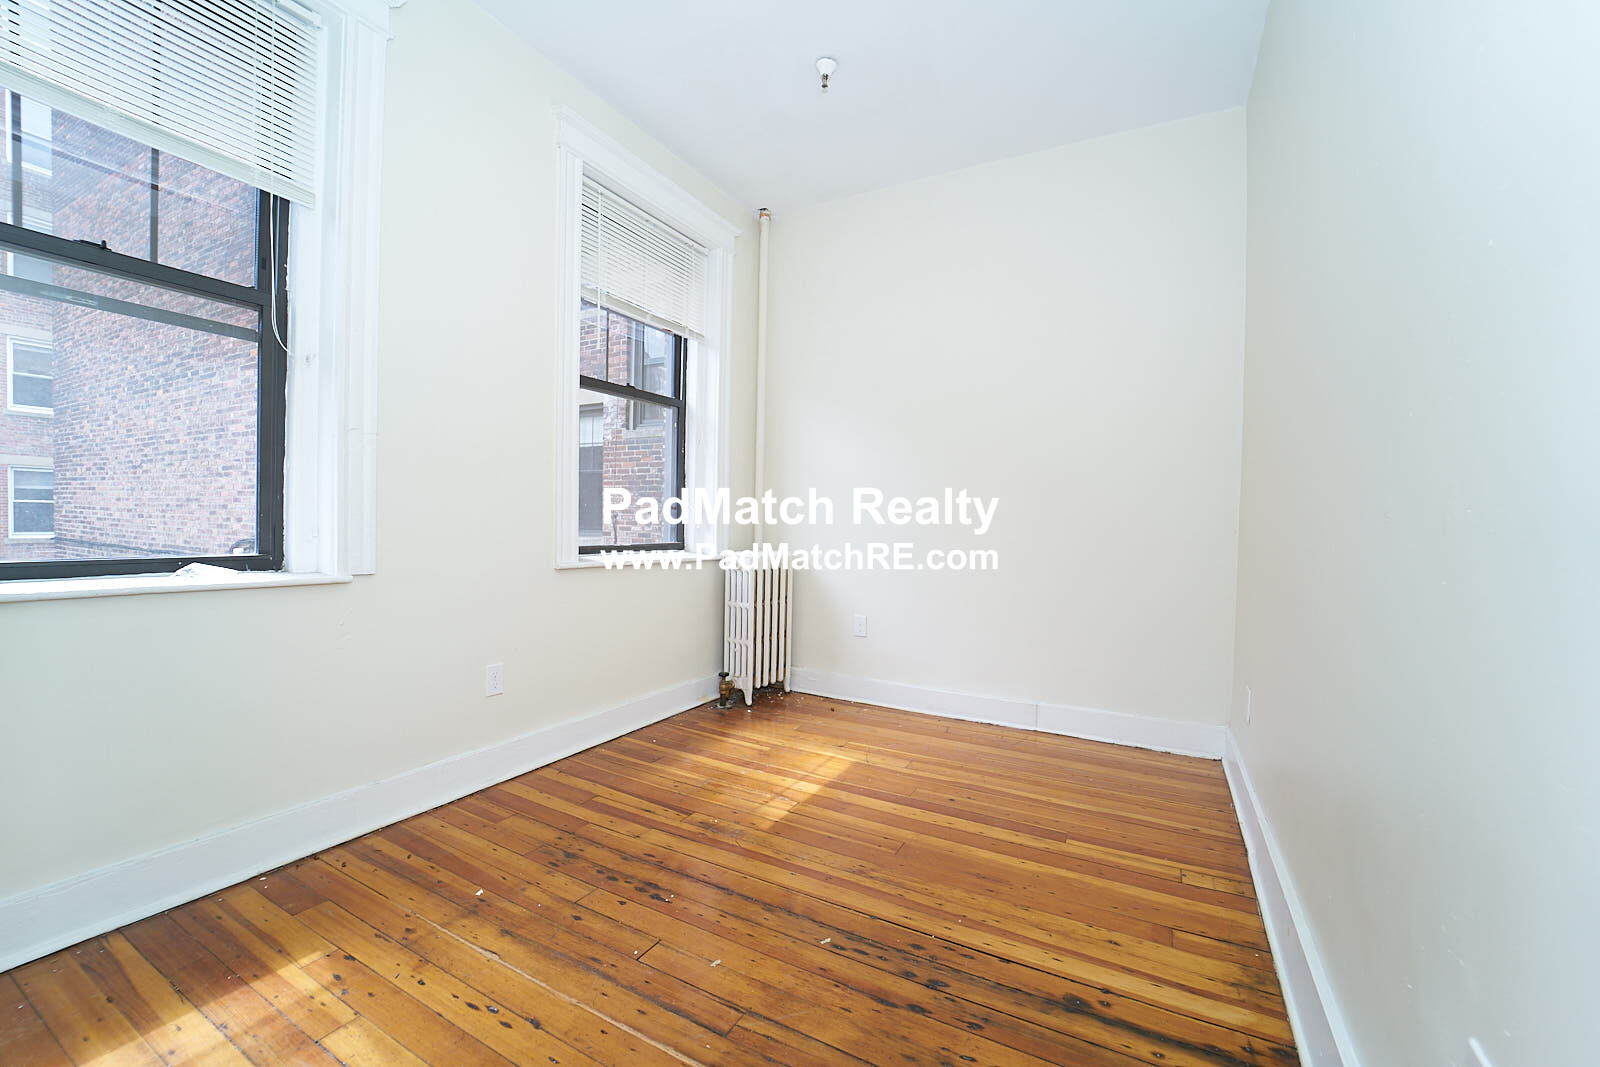 2 Beds, 1 Bath apartment in Boston, Fenway for $2,450